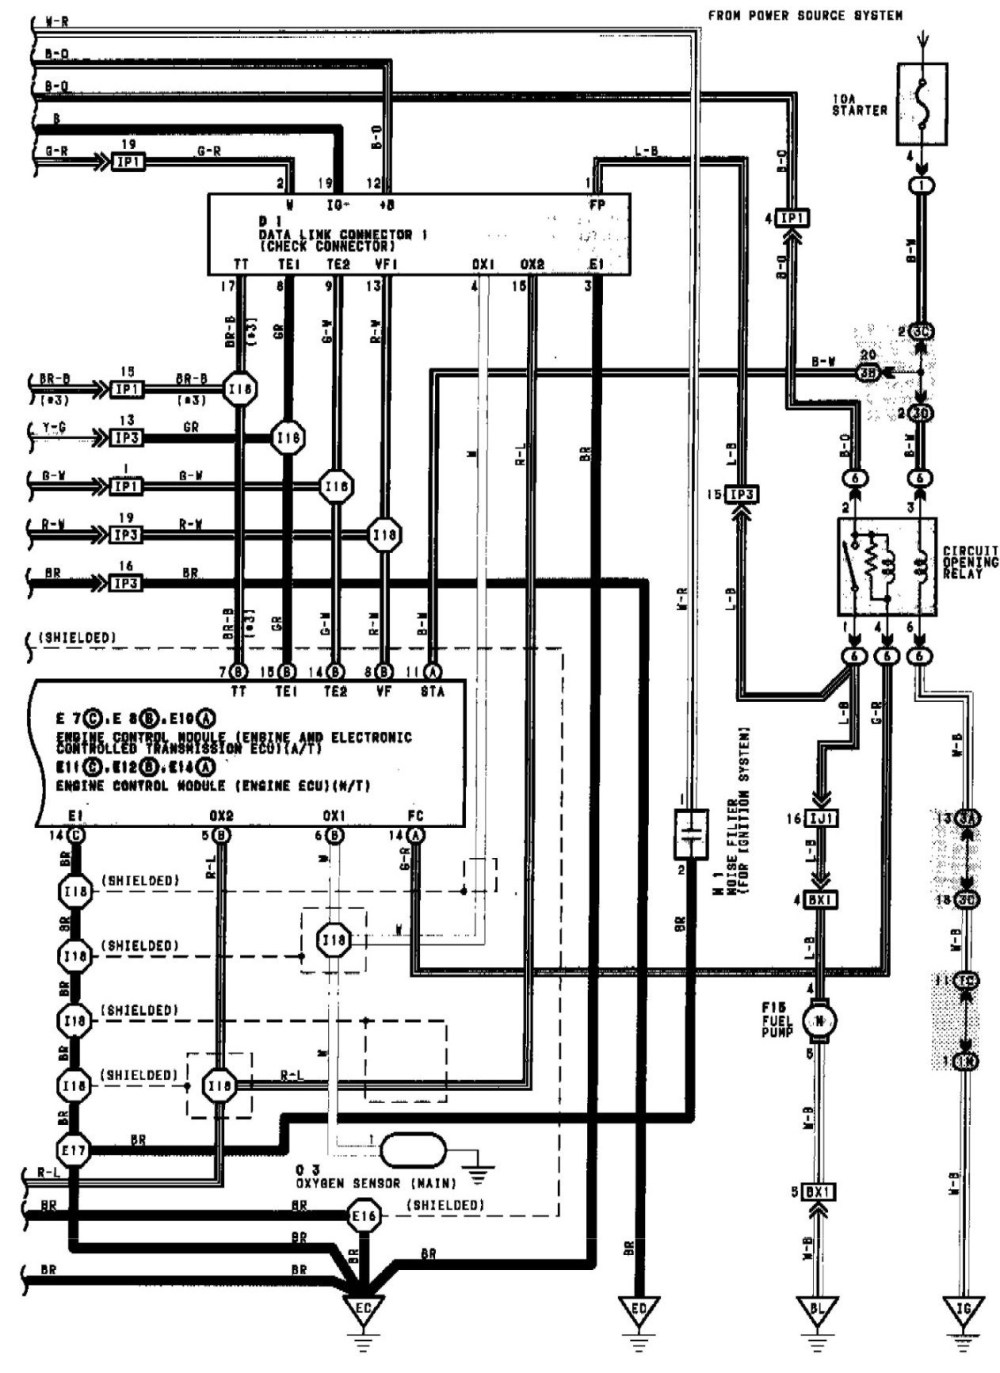 medium resolution of 2011 toyota camry engine diagram 1996 toyota camry wiring diagram wiring diagram chocaraze of 2011